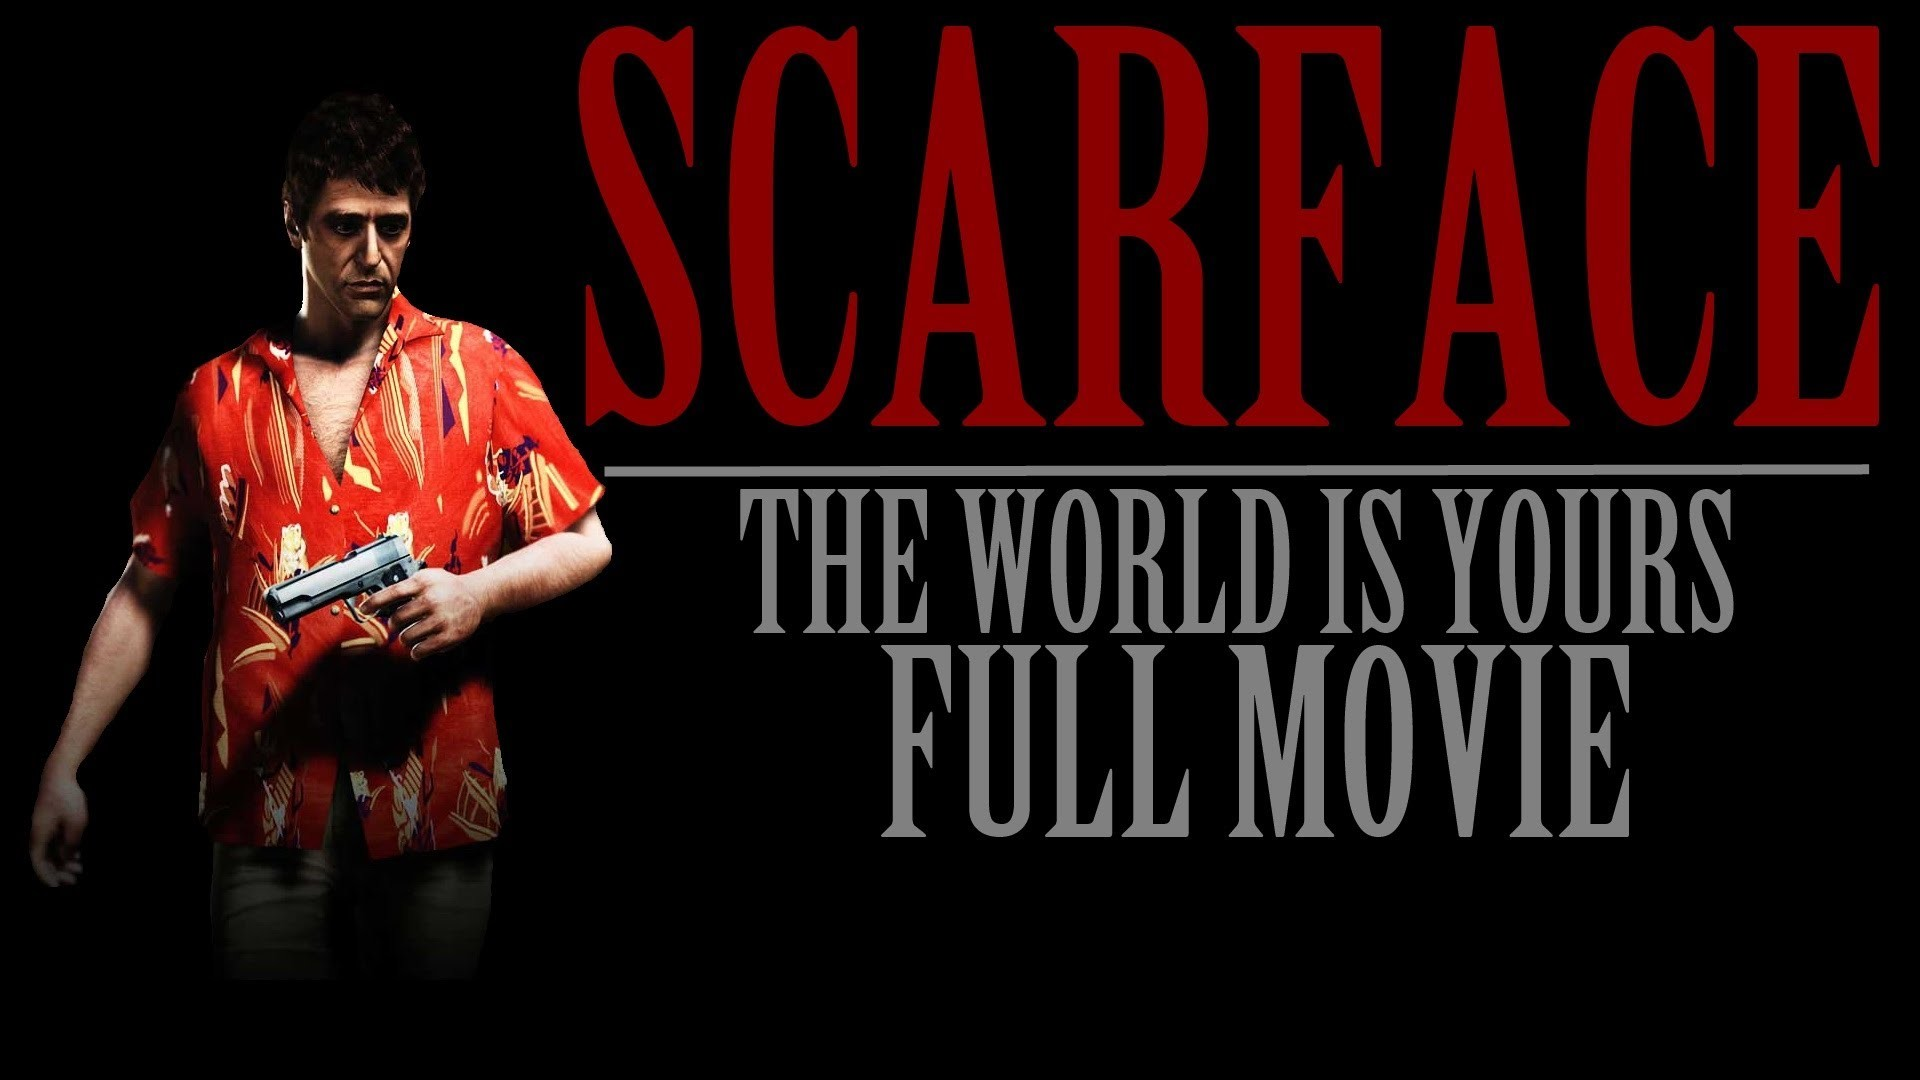 1920x1080 Scarface The World Is Yours: Full Movie (All Game Cutscenes) HD - YouTube